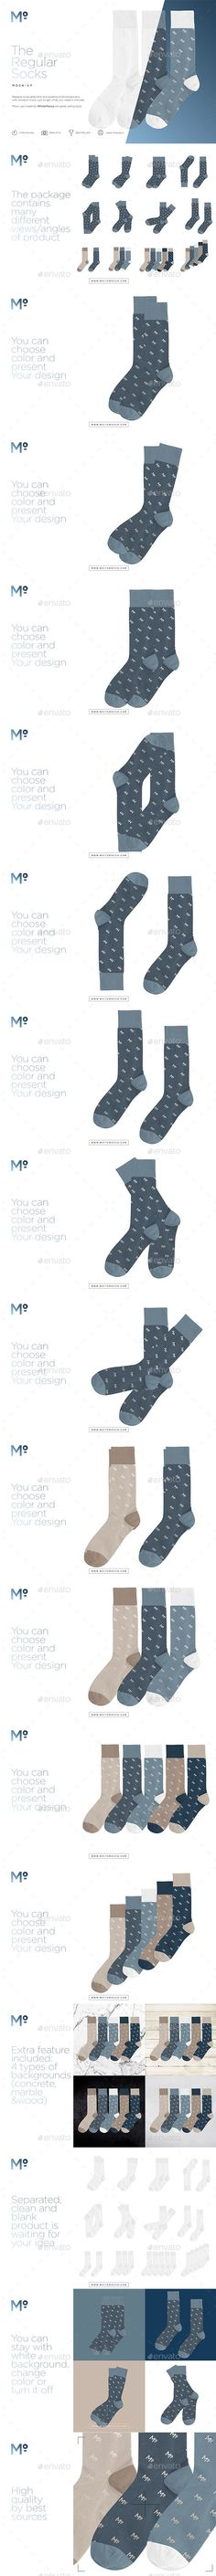 The Regular Socks Mock-up - Miscellaneous #Product #Mock-Ups Download here: https://graphicriver.net/item/the-regular-socks-mockup/19536001?ref=alena994